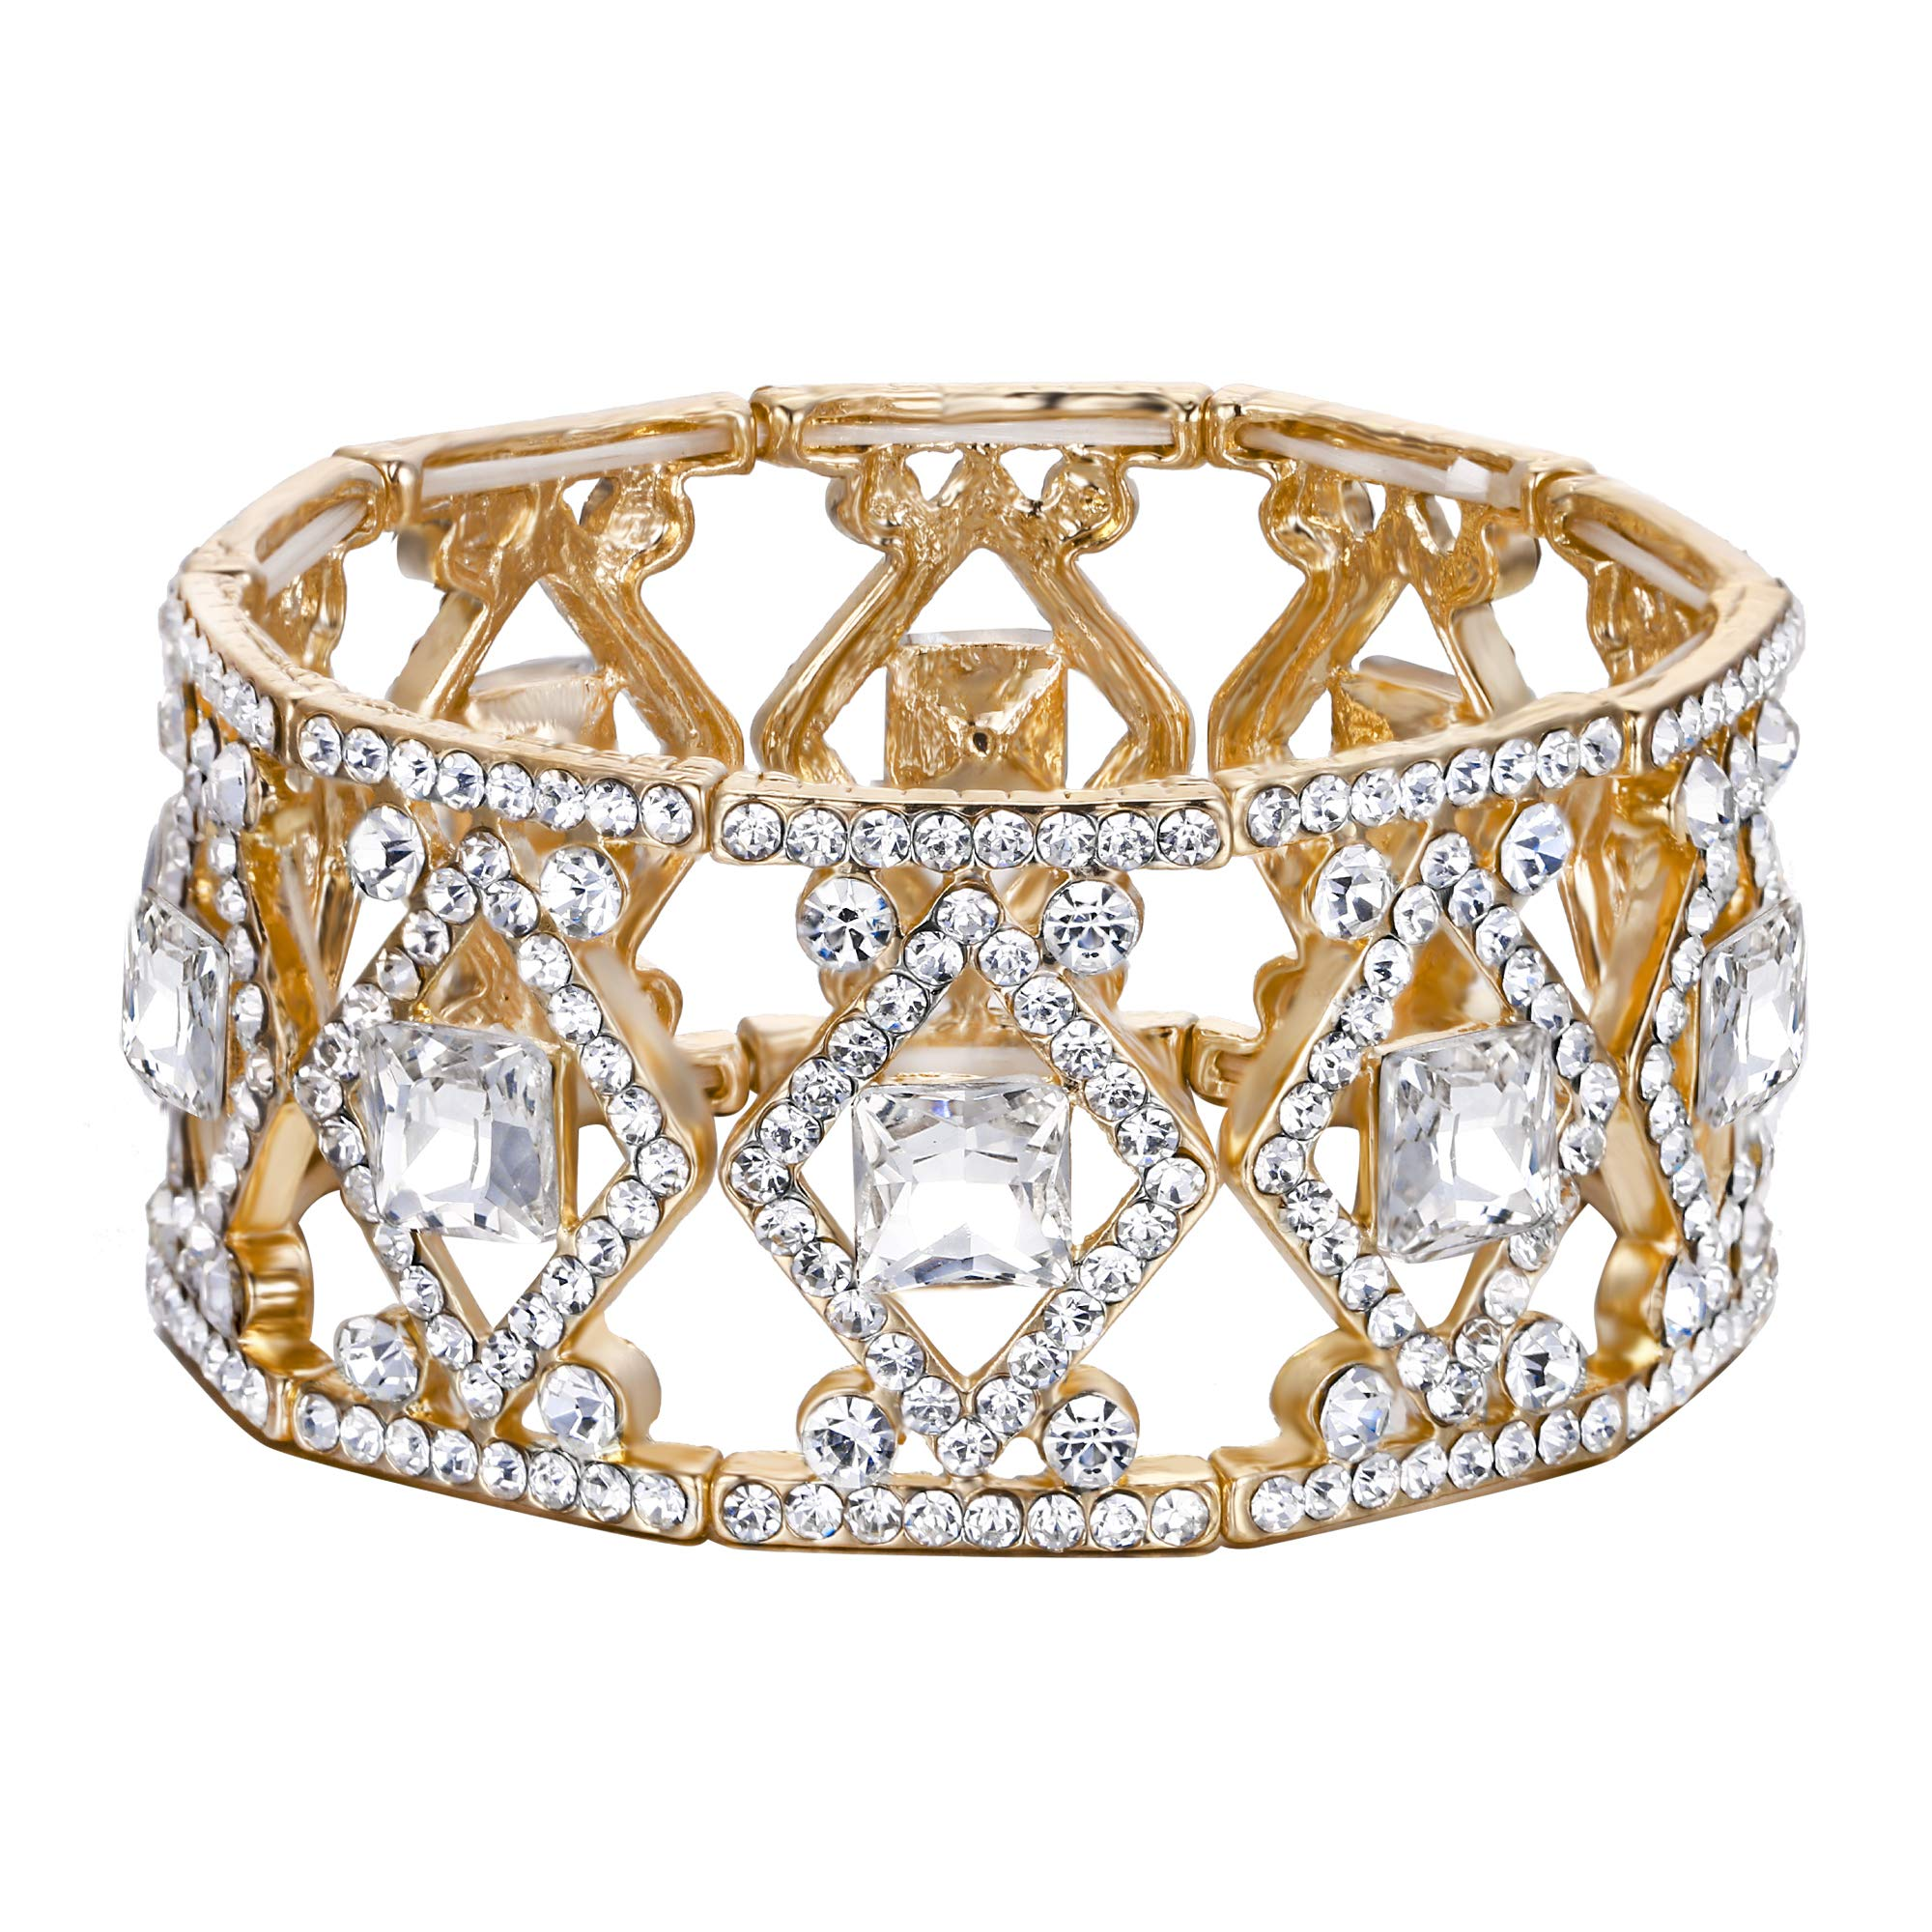 BriLove Women's Wedding Bridal Crystal Art Deco Square Framed Tennis Stretch Bracelet Clear Gold-Toned by BriLove